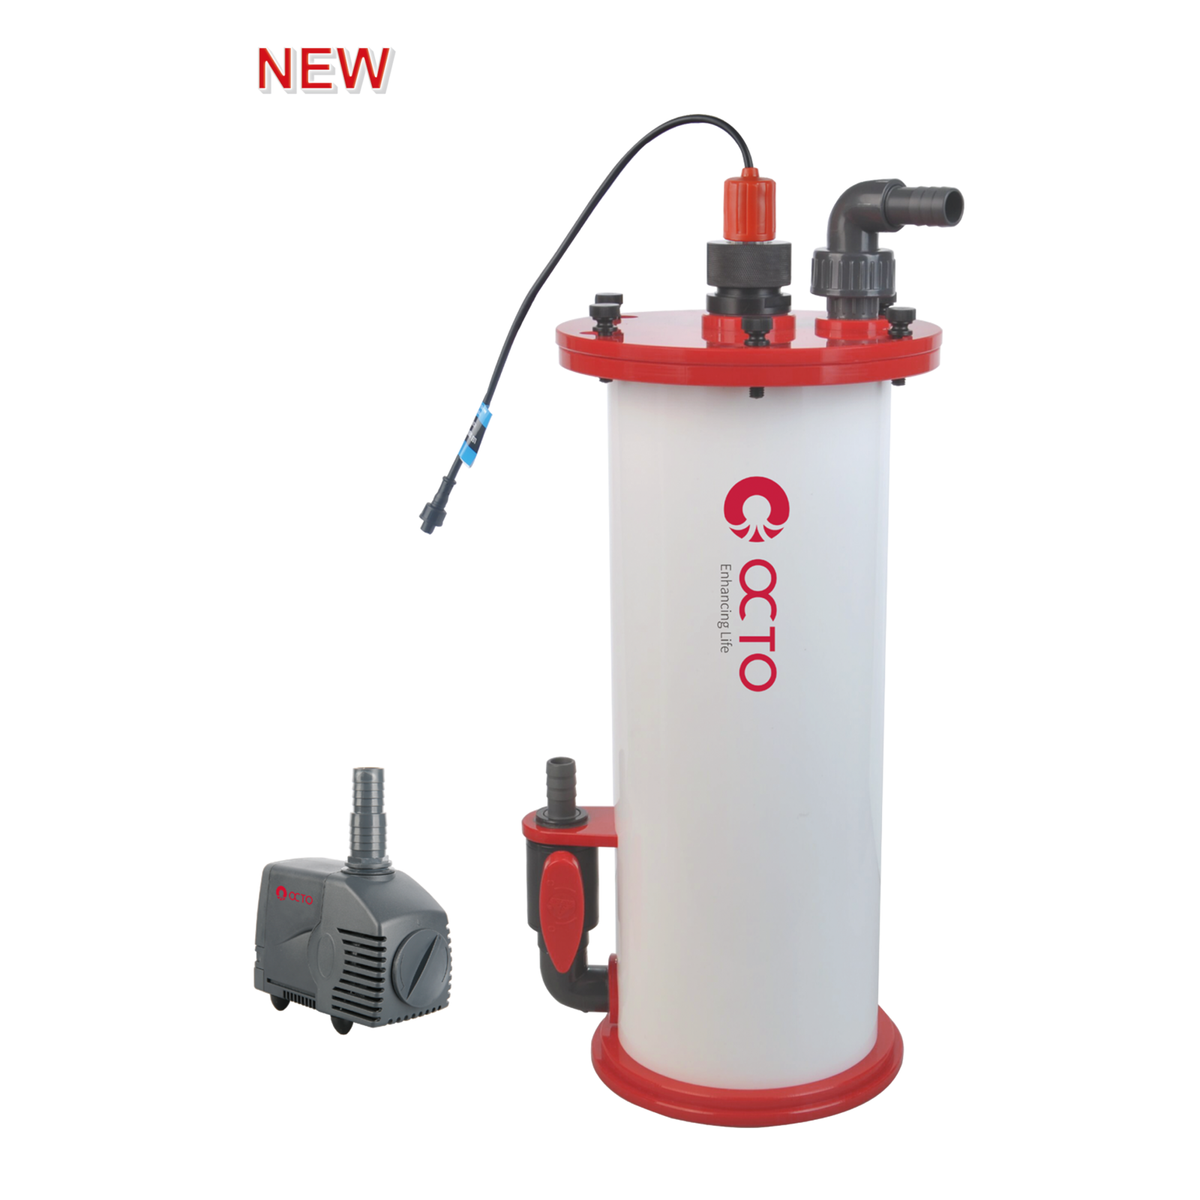 OCTO LR-150 Light Reactor